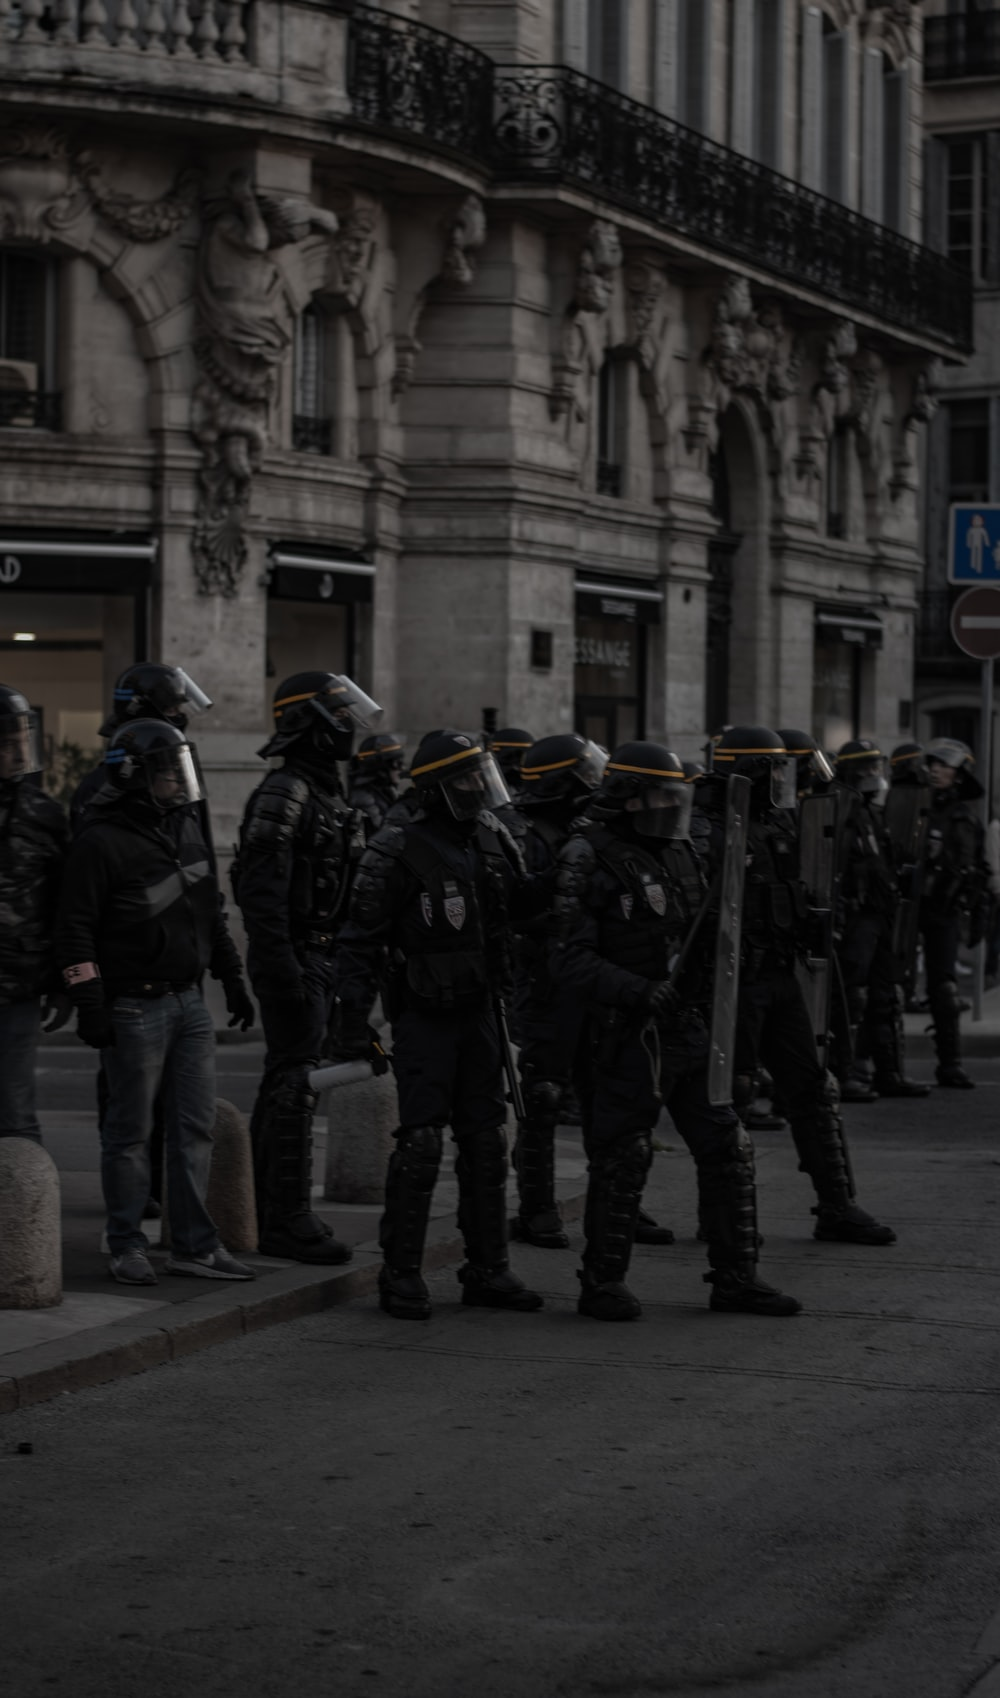 soldiers holding shields near building